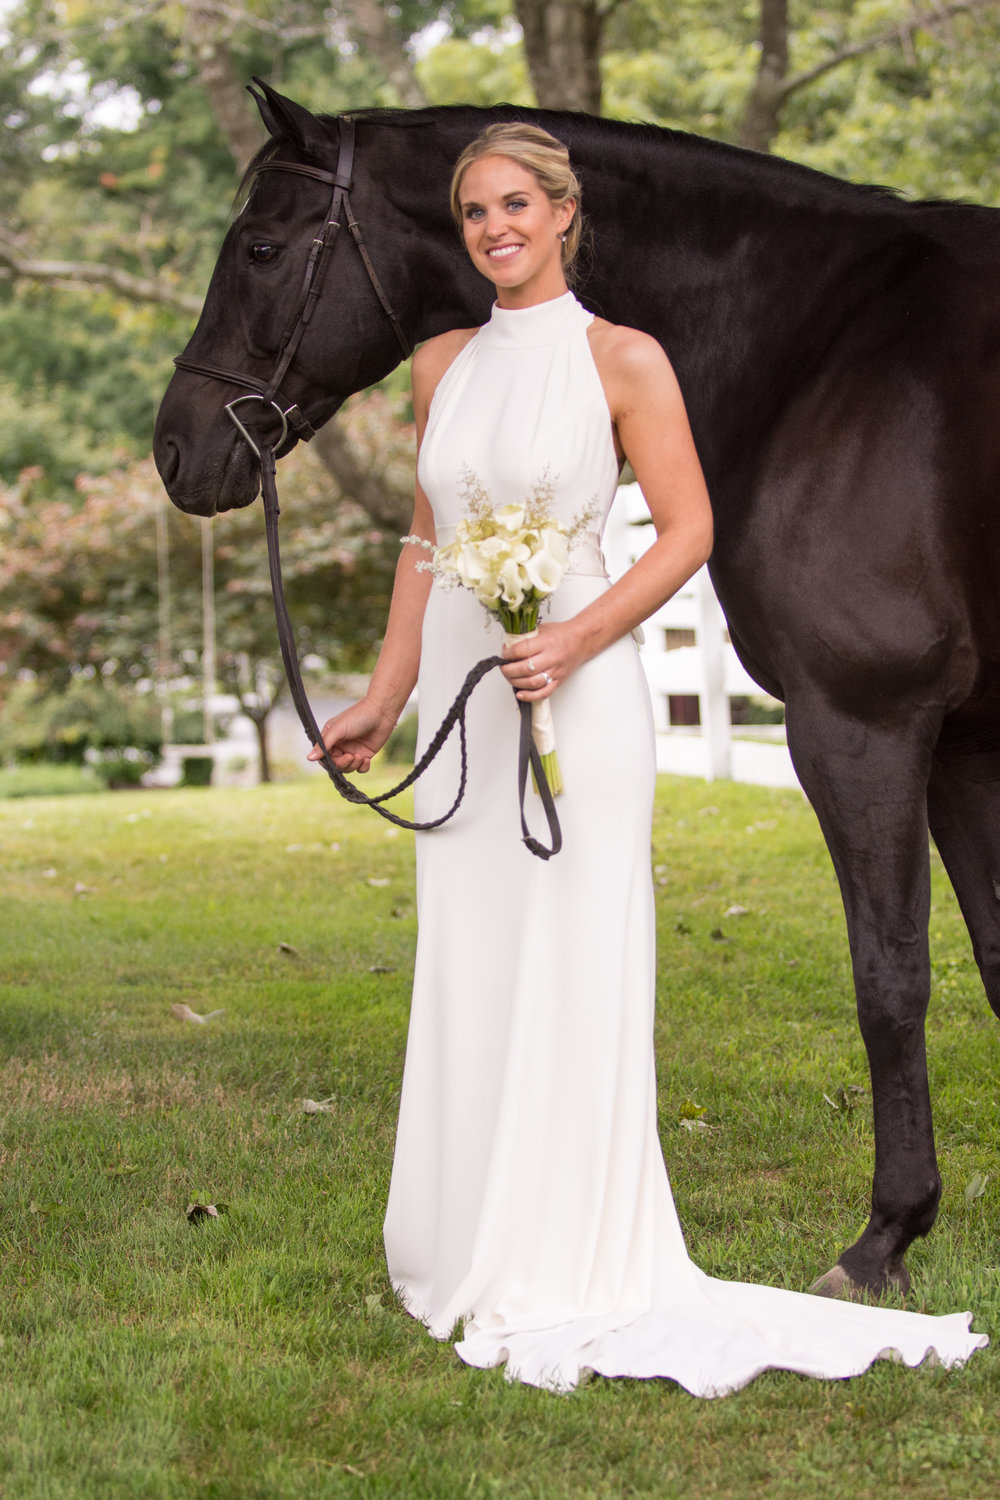 Equine+Farm+Barn+Horse+Wedding+Bride+Dress+Flowers+Gown+Outdoor+Summer+New+York+Erny+Photo+CO.jpg